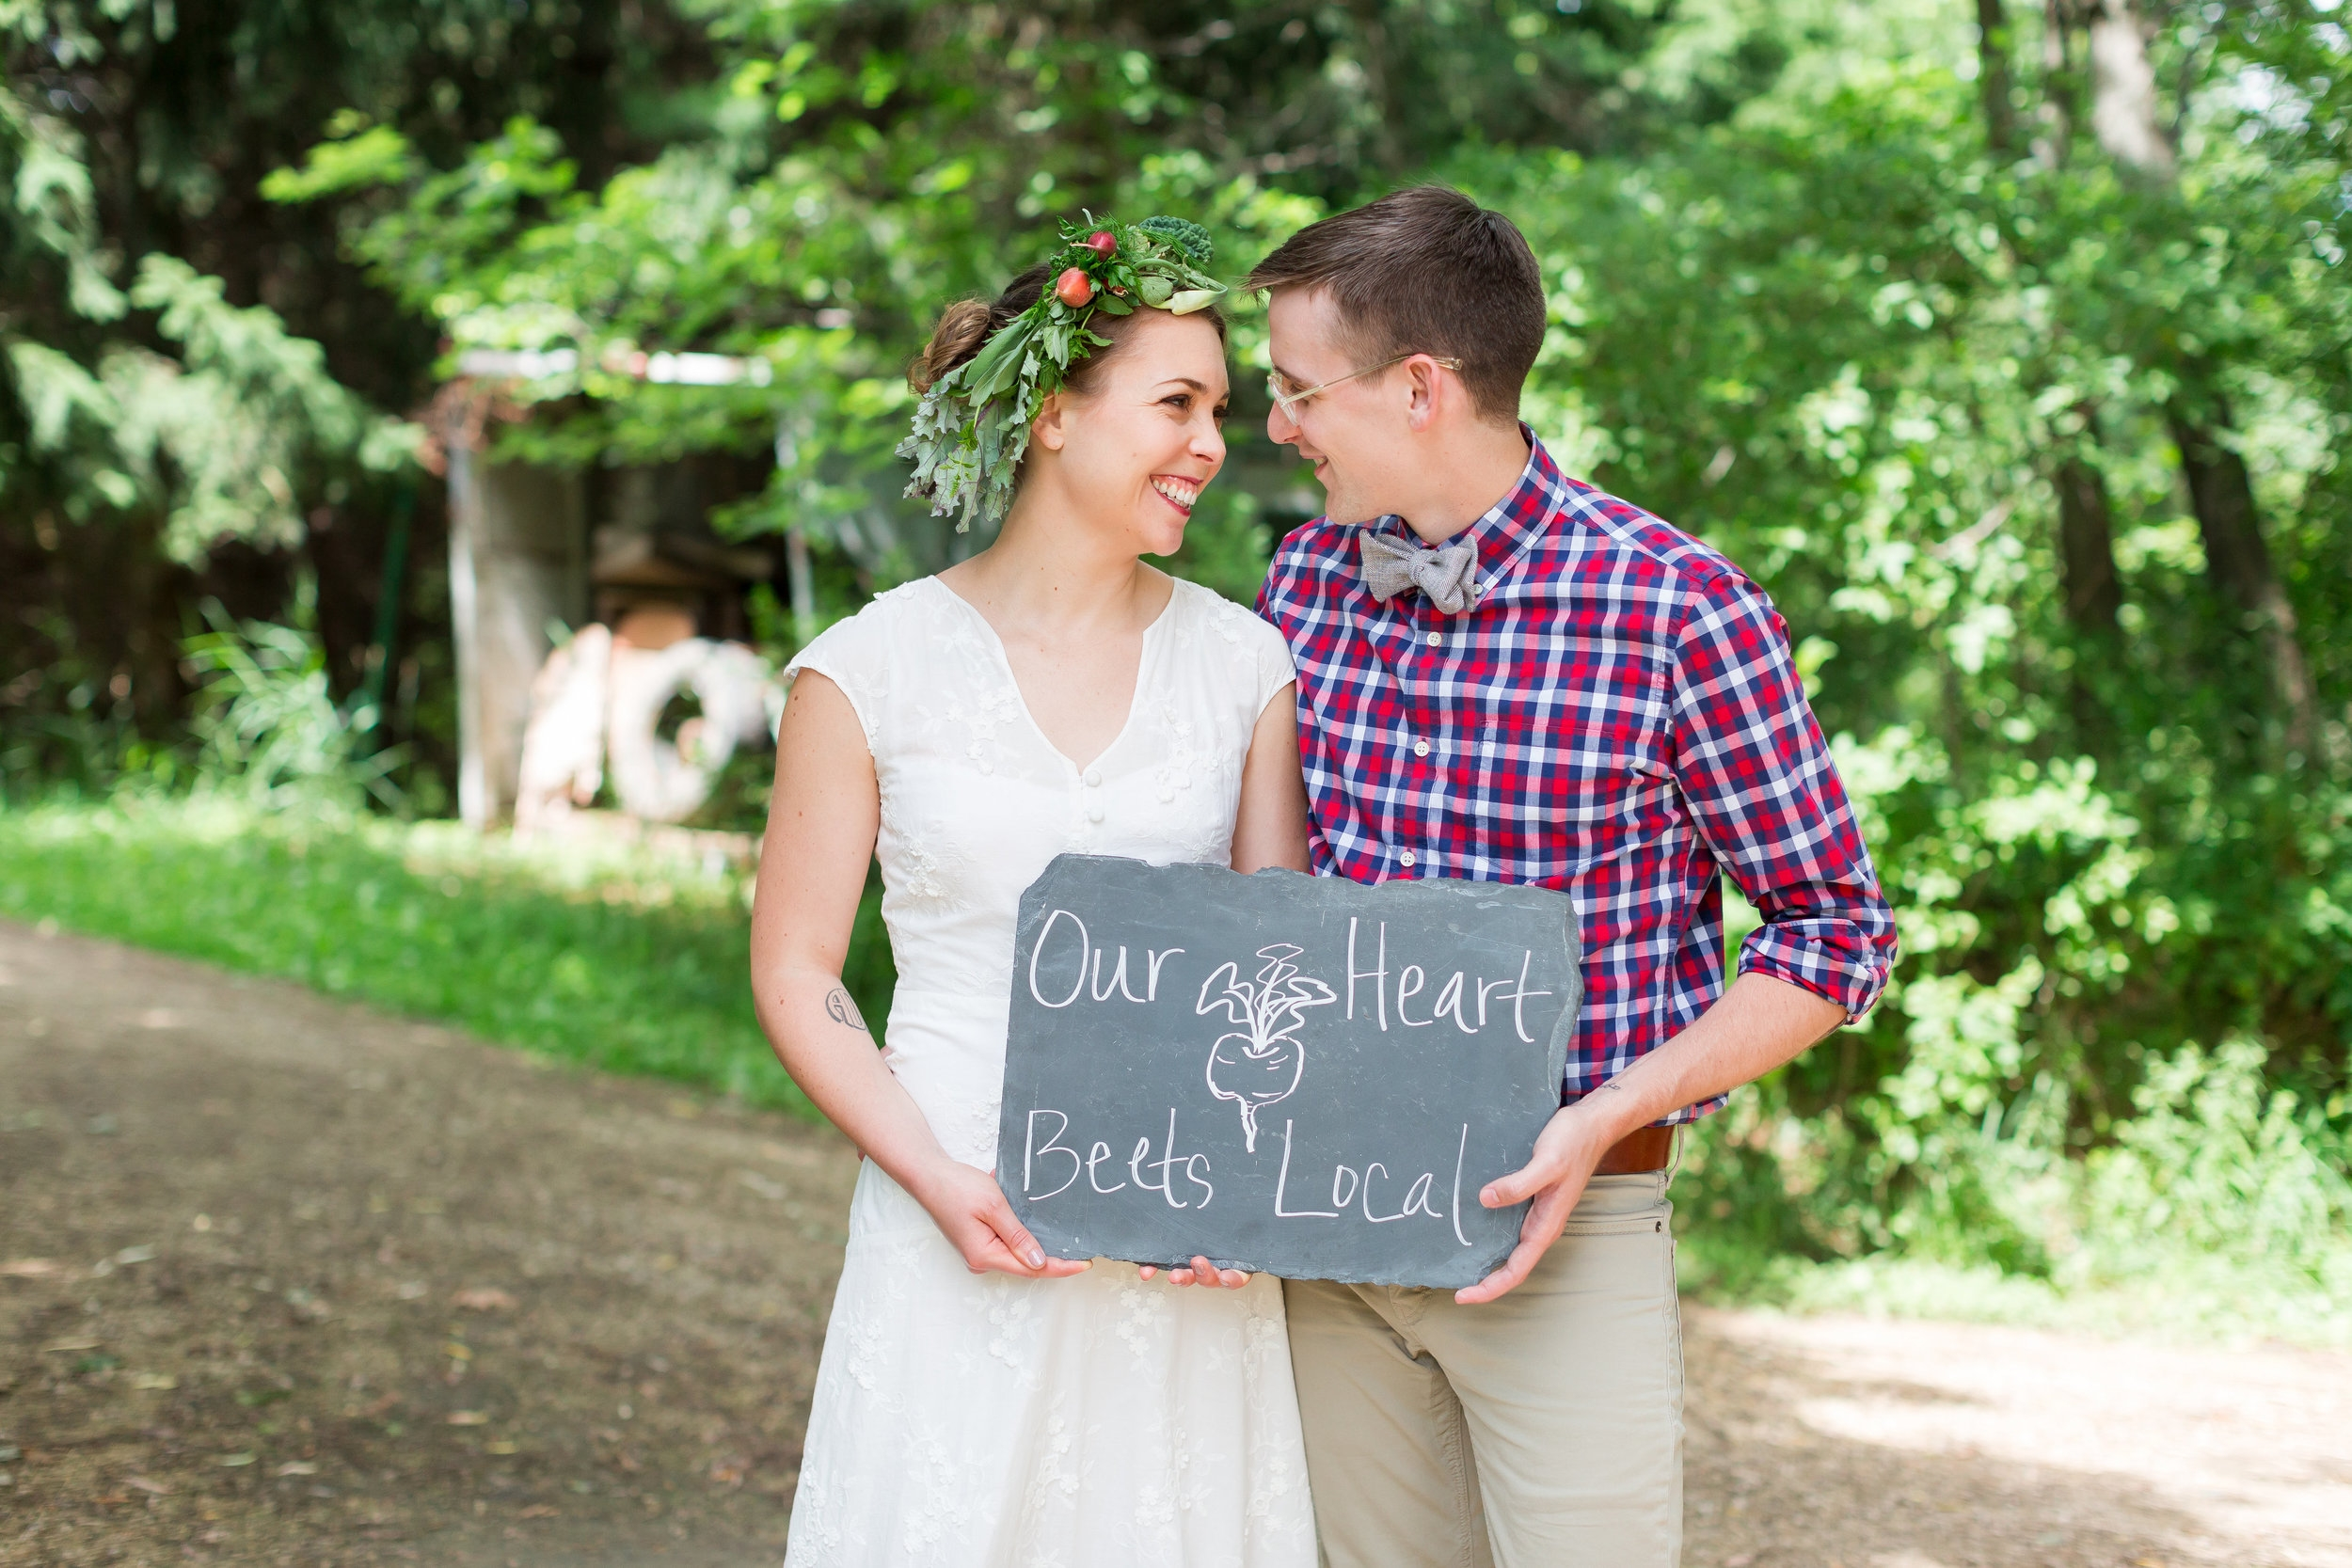 Maison Meredith Photography at Spicer Family Farm and Milkweed featured on Destination Wisconsin Wedding Blog